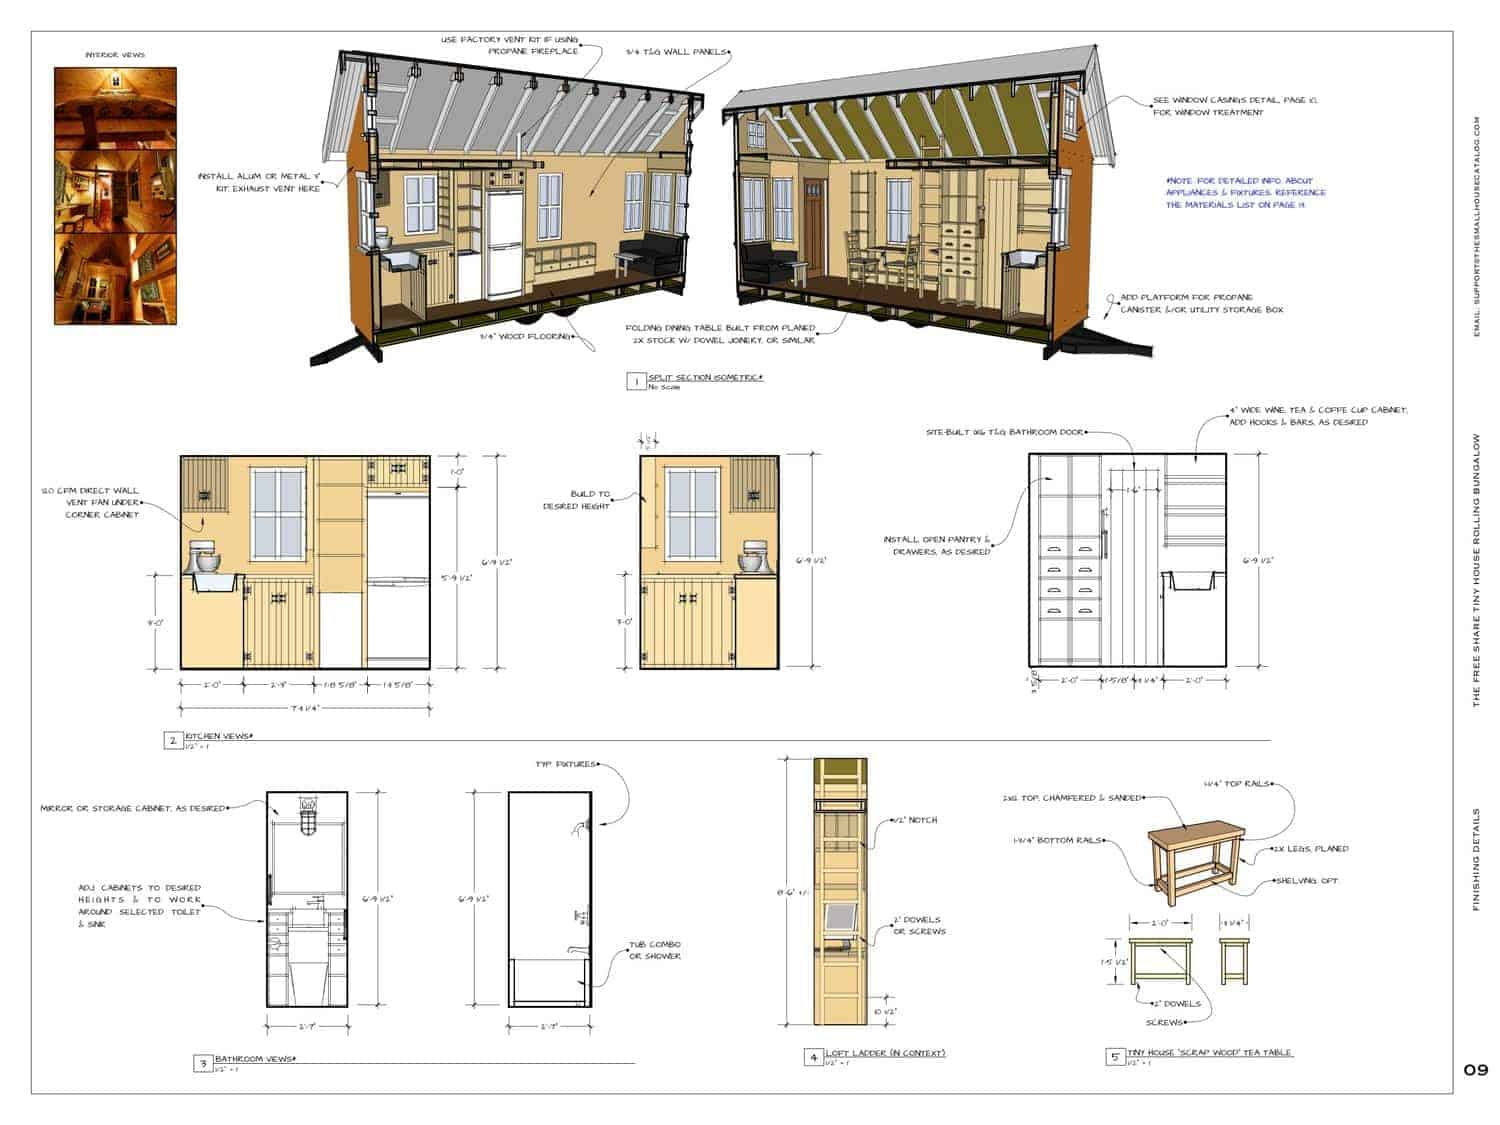 Get free plans to build this adorable tiny bungalow for Buy home plans online